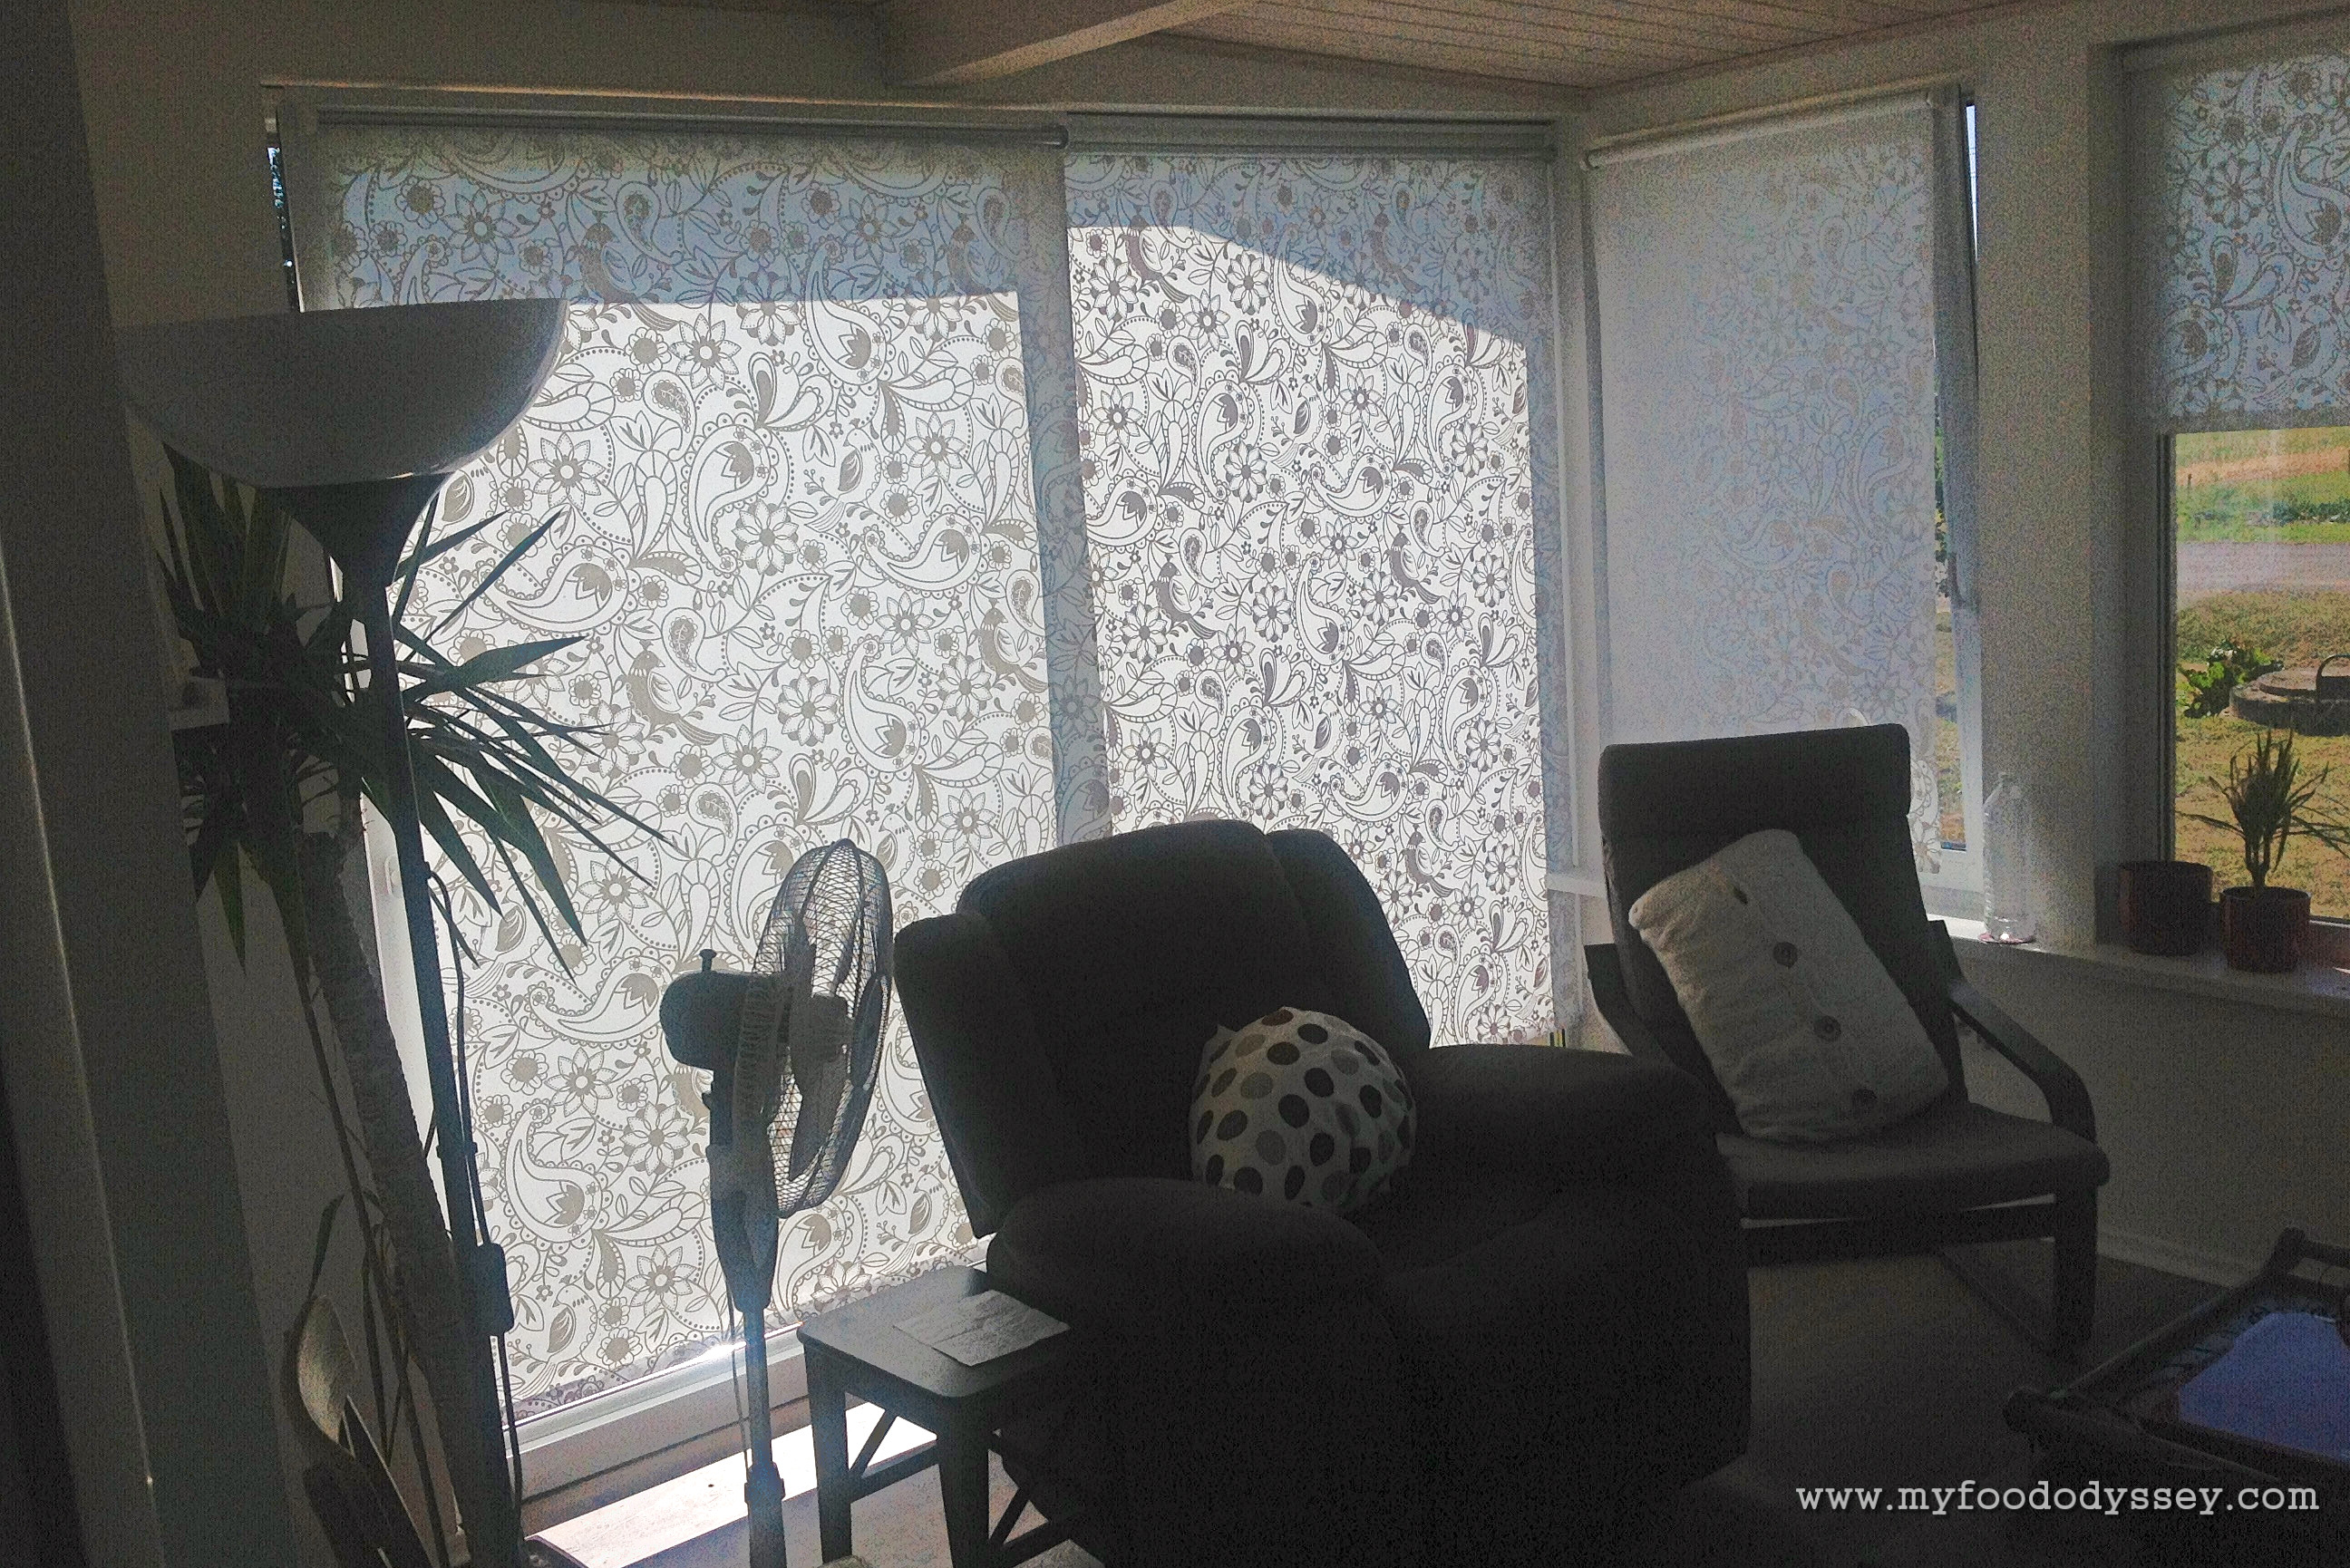 roman singapore buy window balcony blinds ideas blind roller sunshade review ikea softhome high car price blindsre quality shop blindngapore